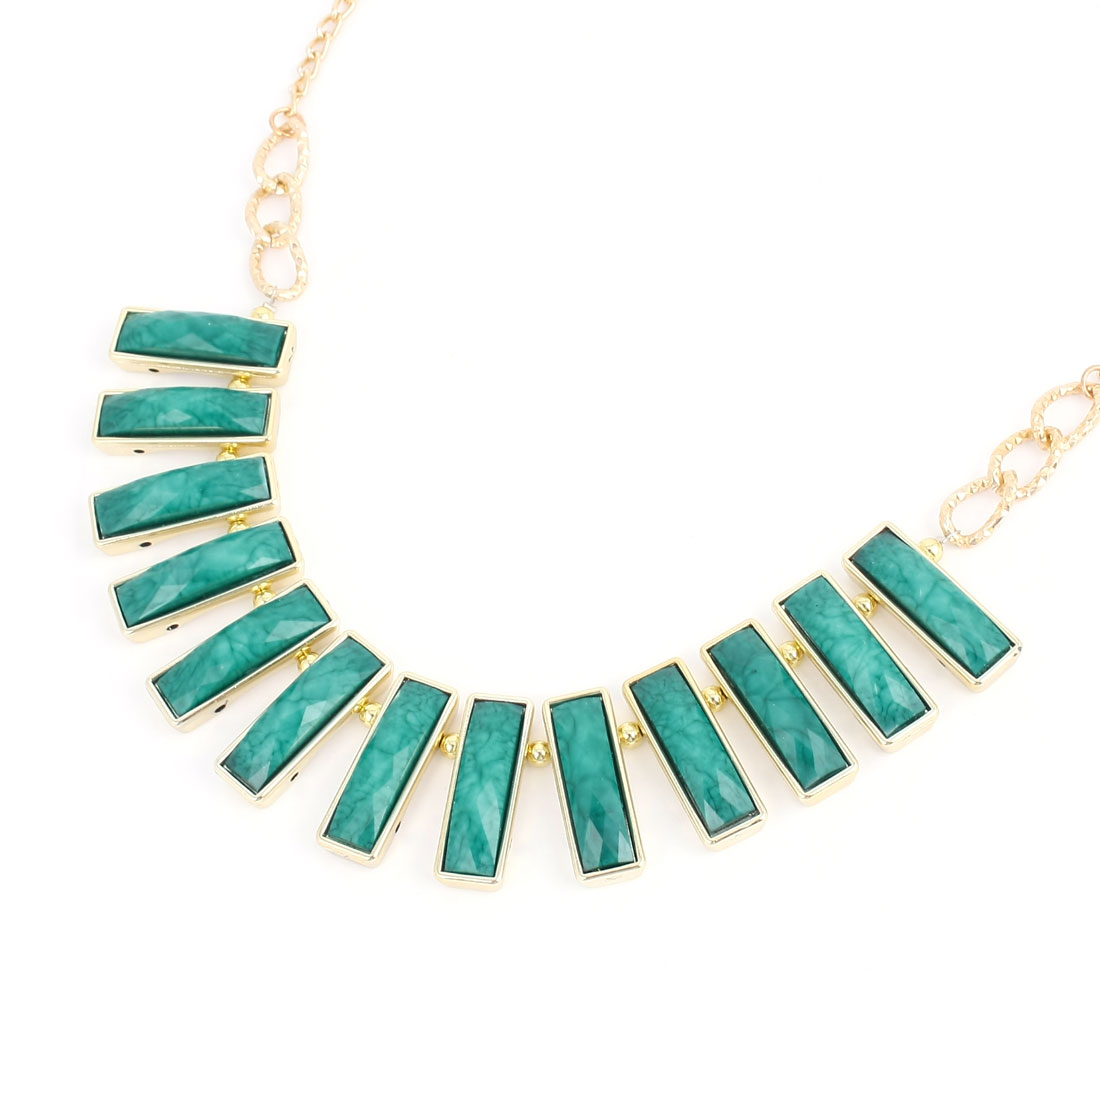 Green Rectangle Shaped Beads Necklace Decoration for Ladies Woman